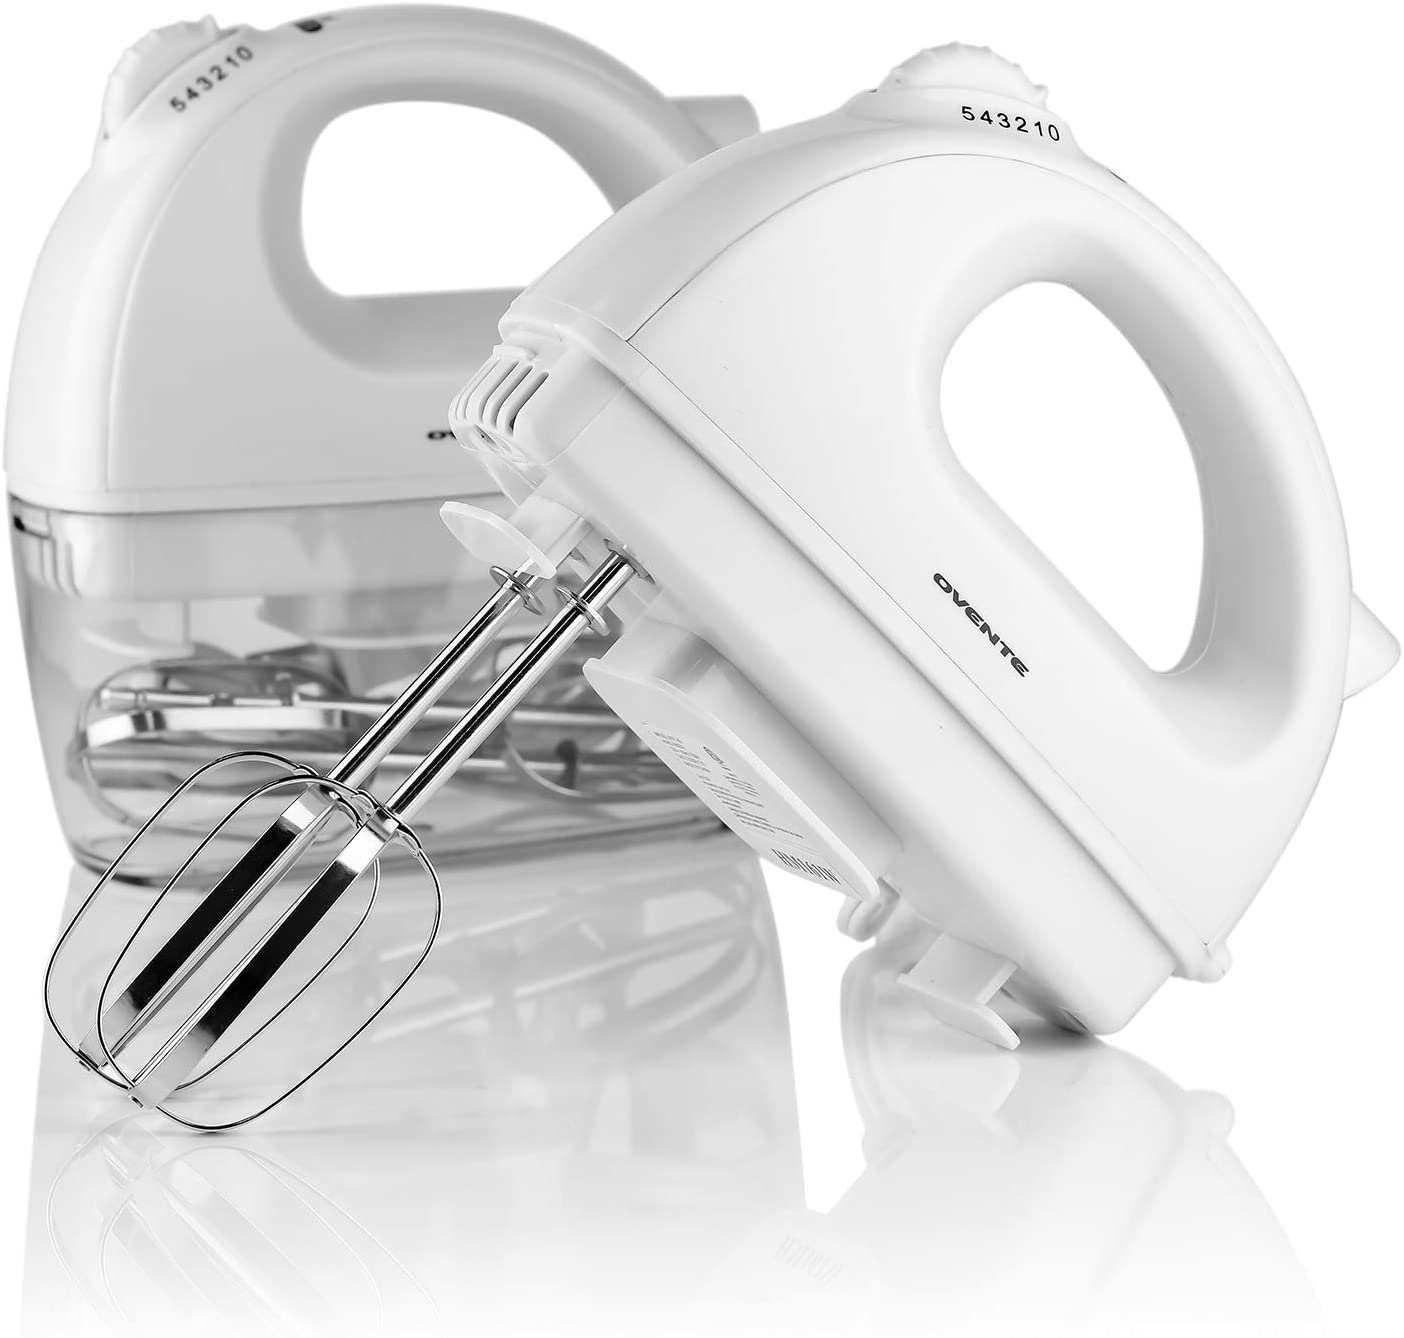 OVENTE Electric Hand Mixer, 5 Mixing Speeds, 200W, 2 Stainless Steel Chrome Beaters Free Snap-On Case, White HM161W